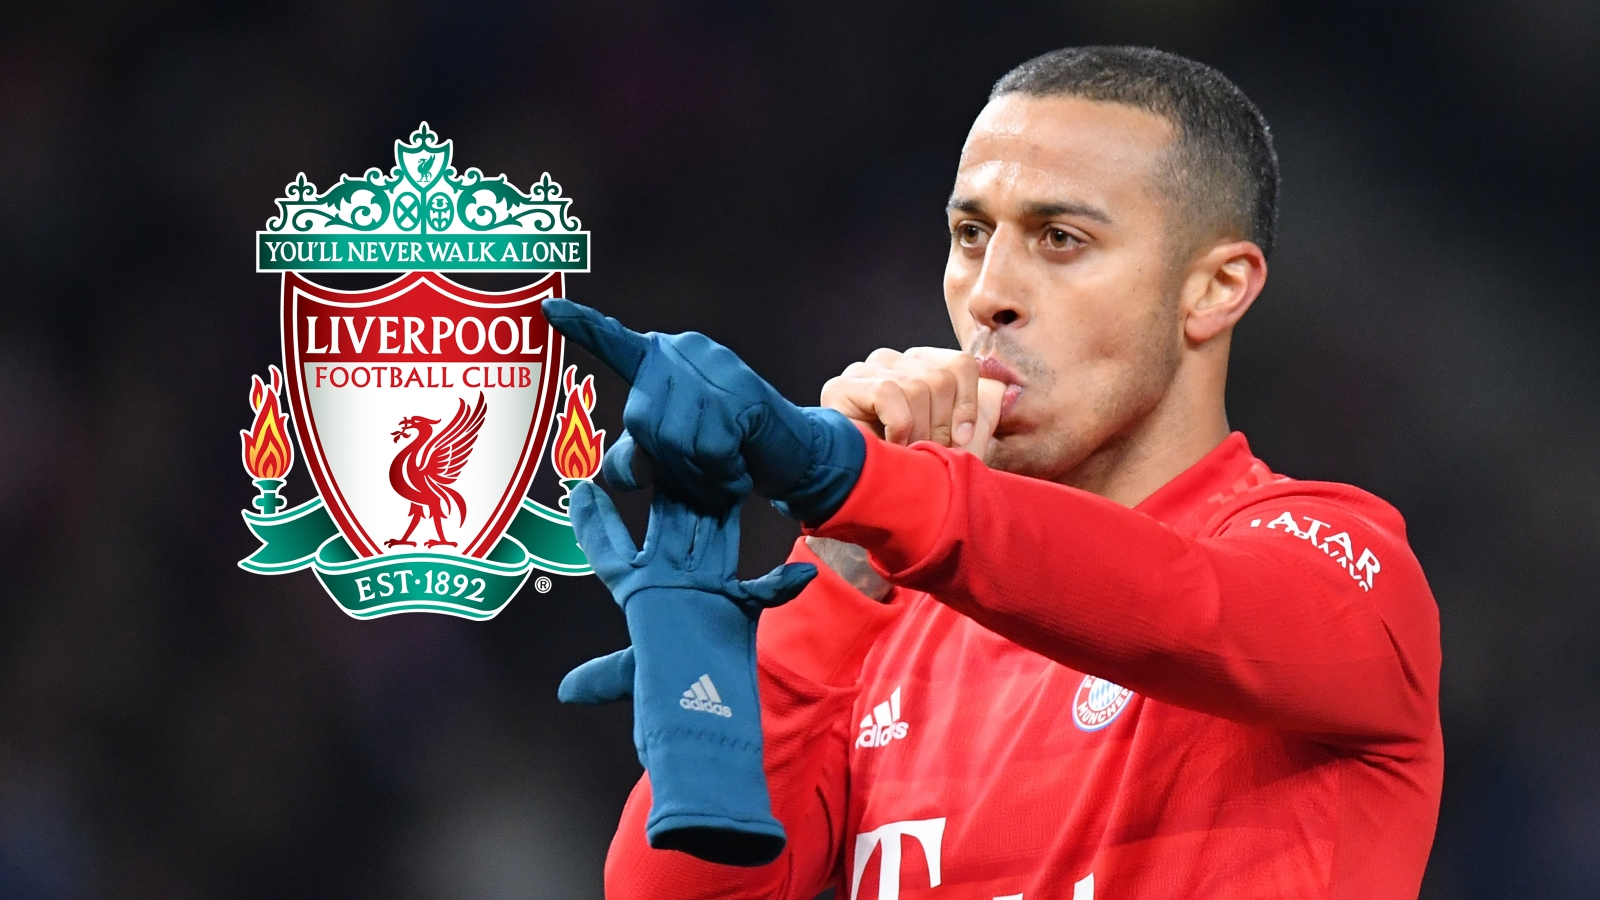 Bayern boss Flick hints at Premier League move for Thiago amid Liverpool links